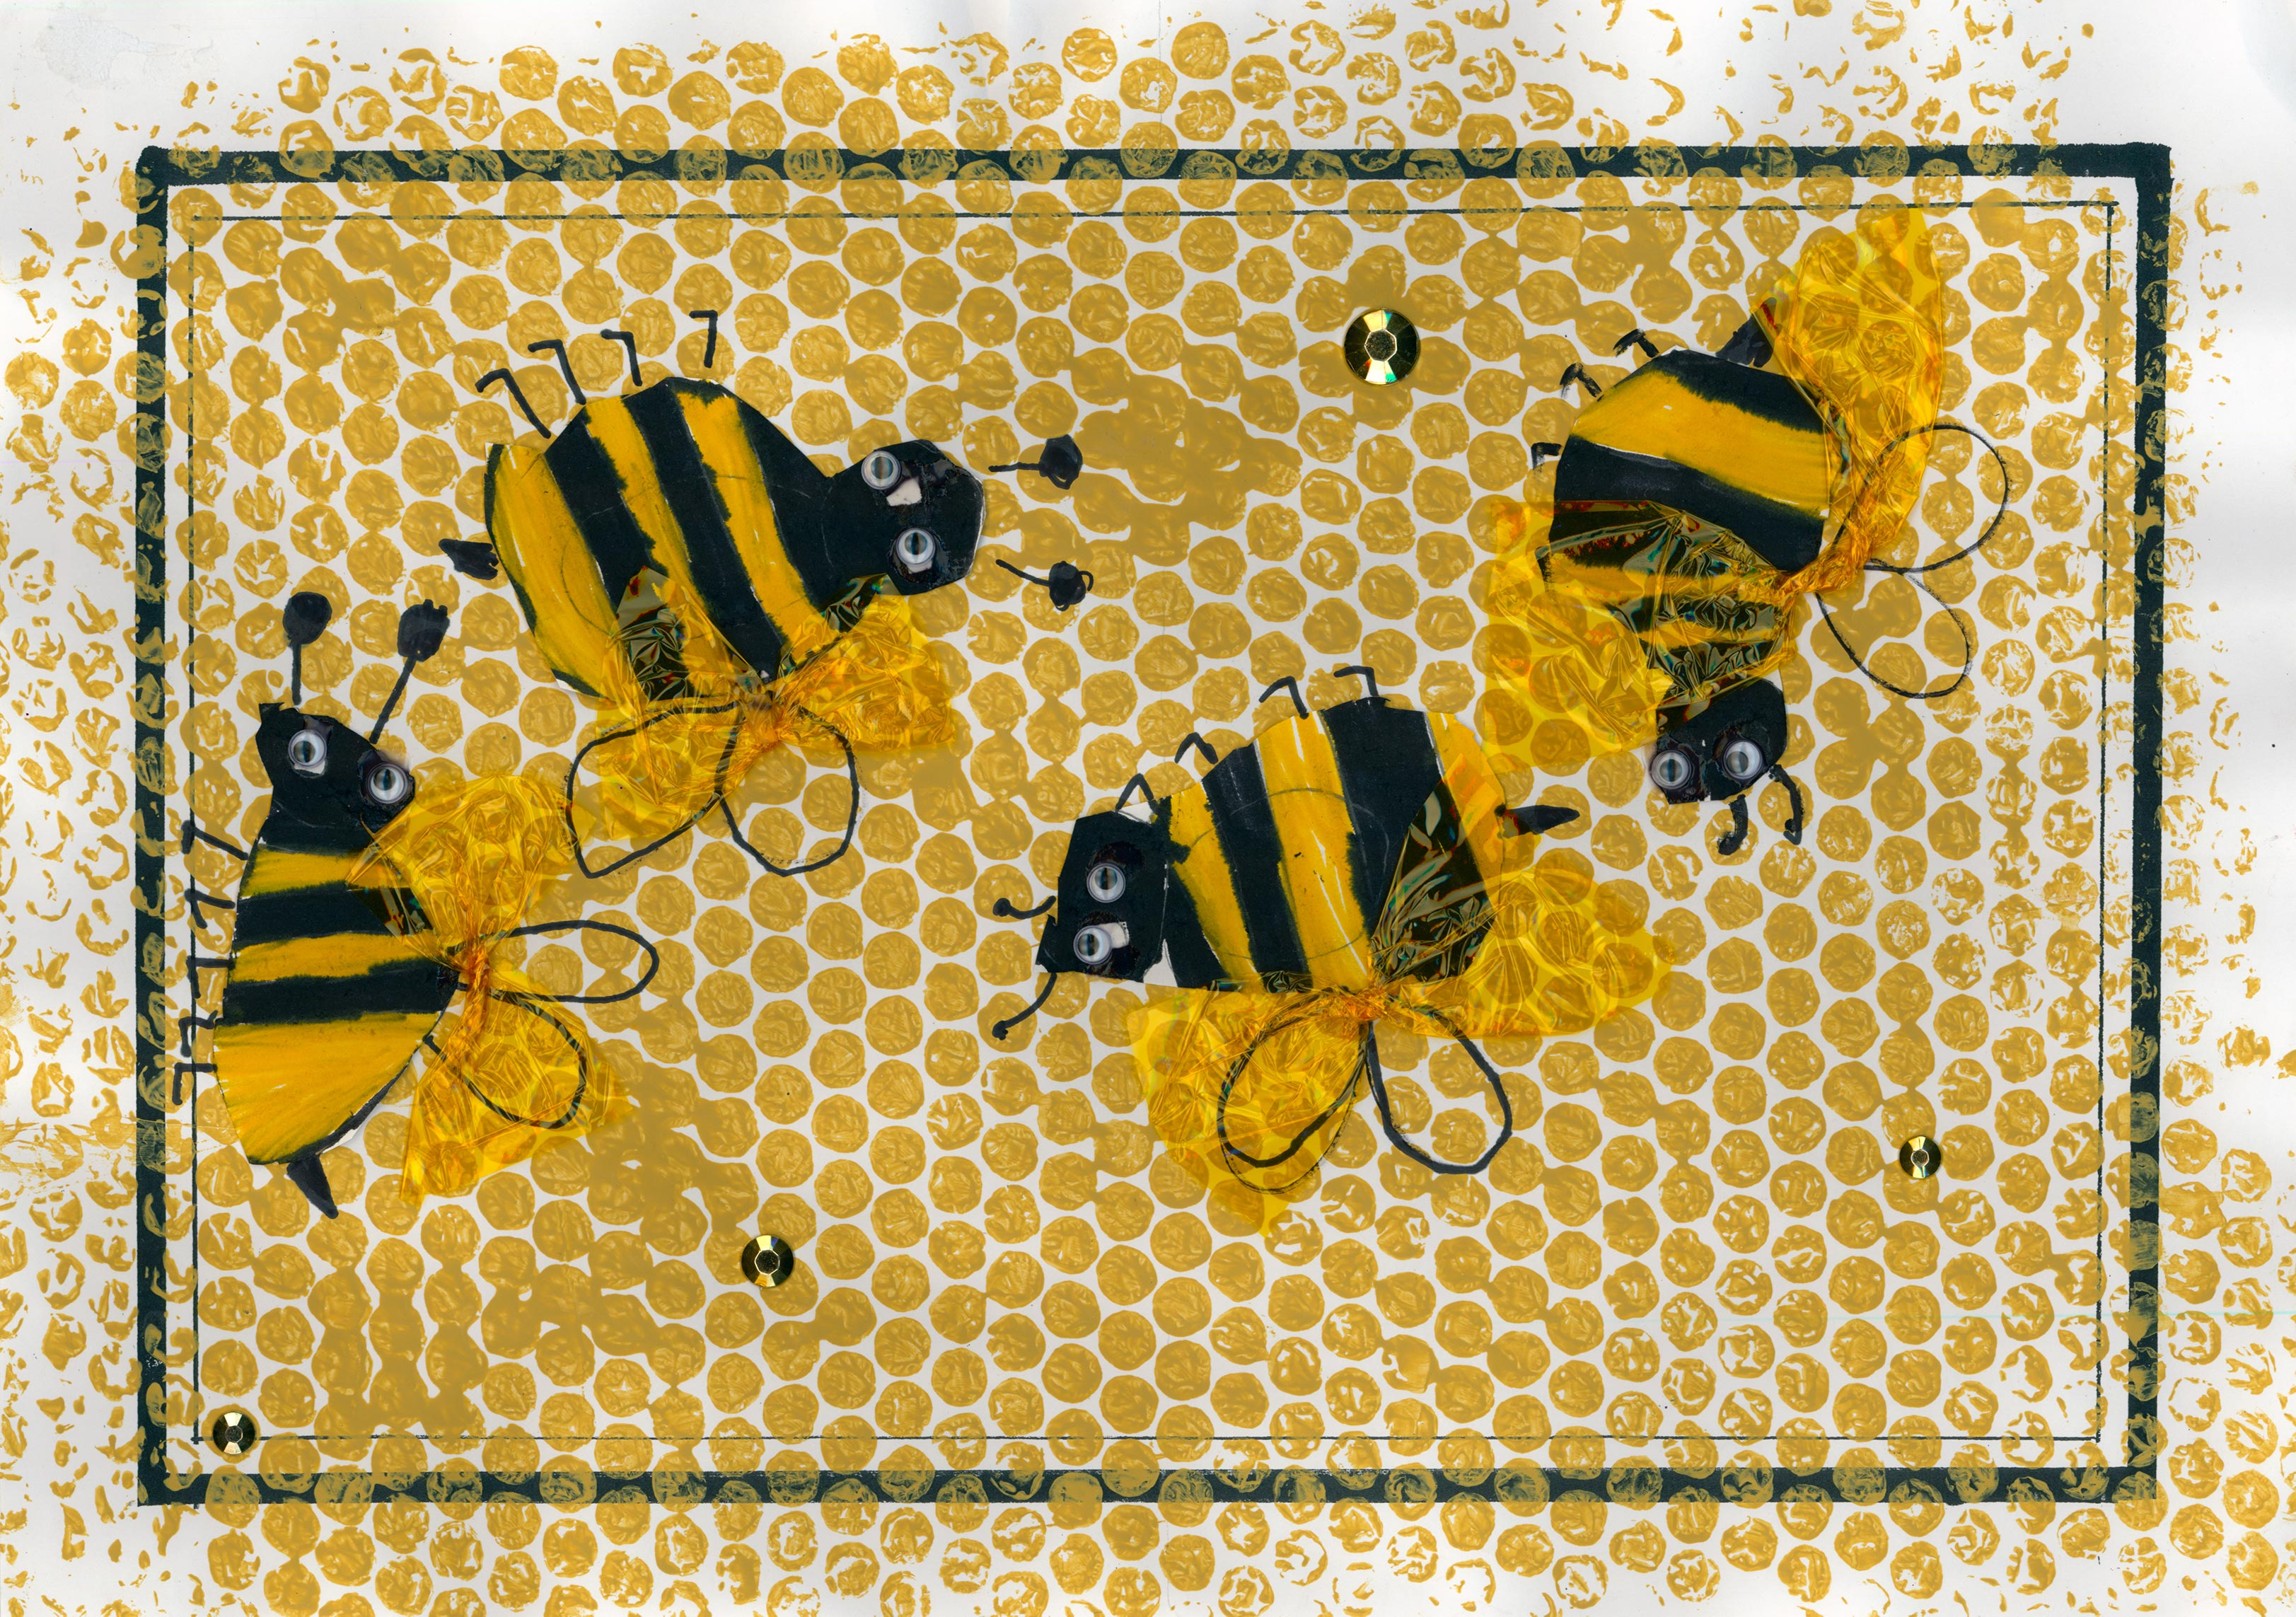 Operation Art 2019 – Stage 1 190161 Bees